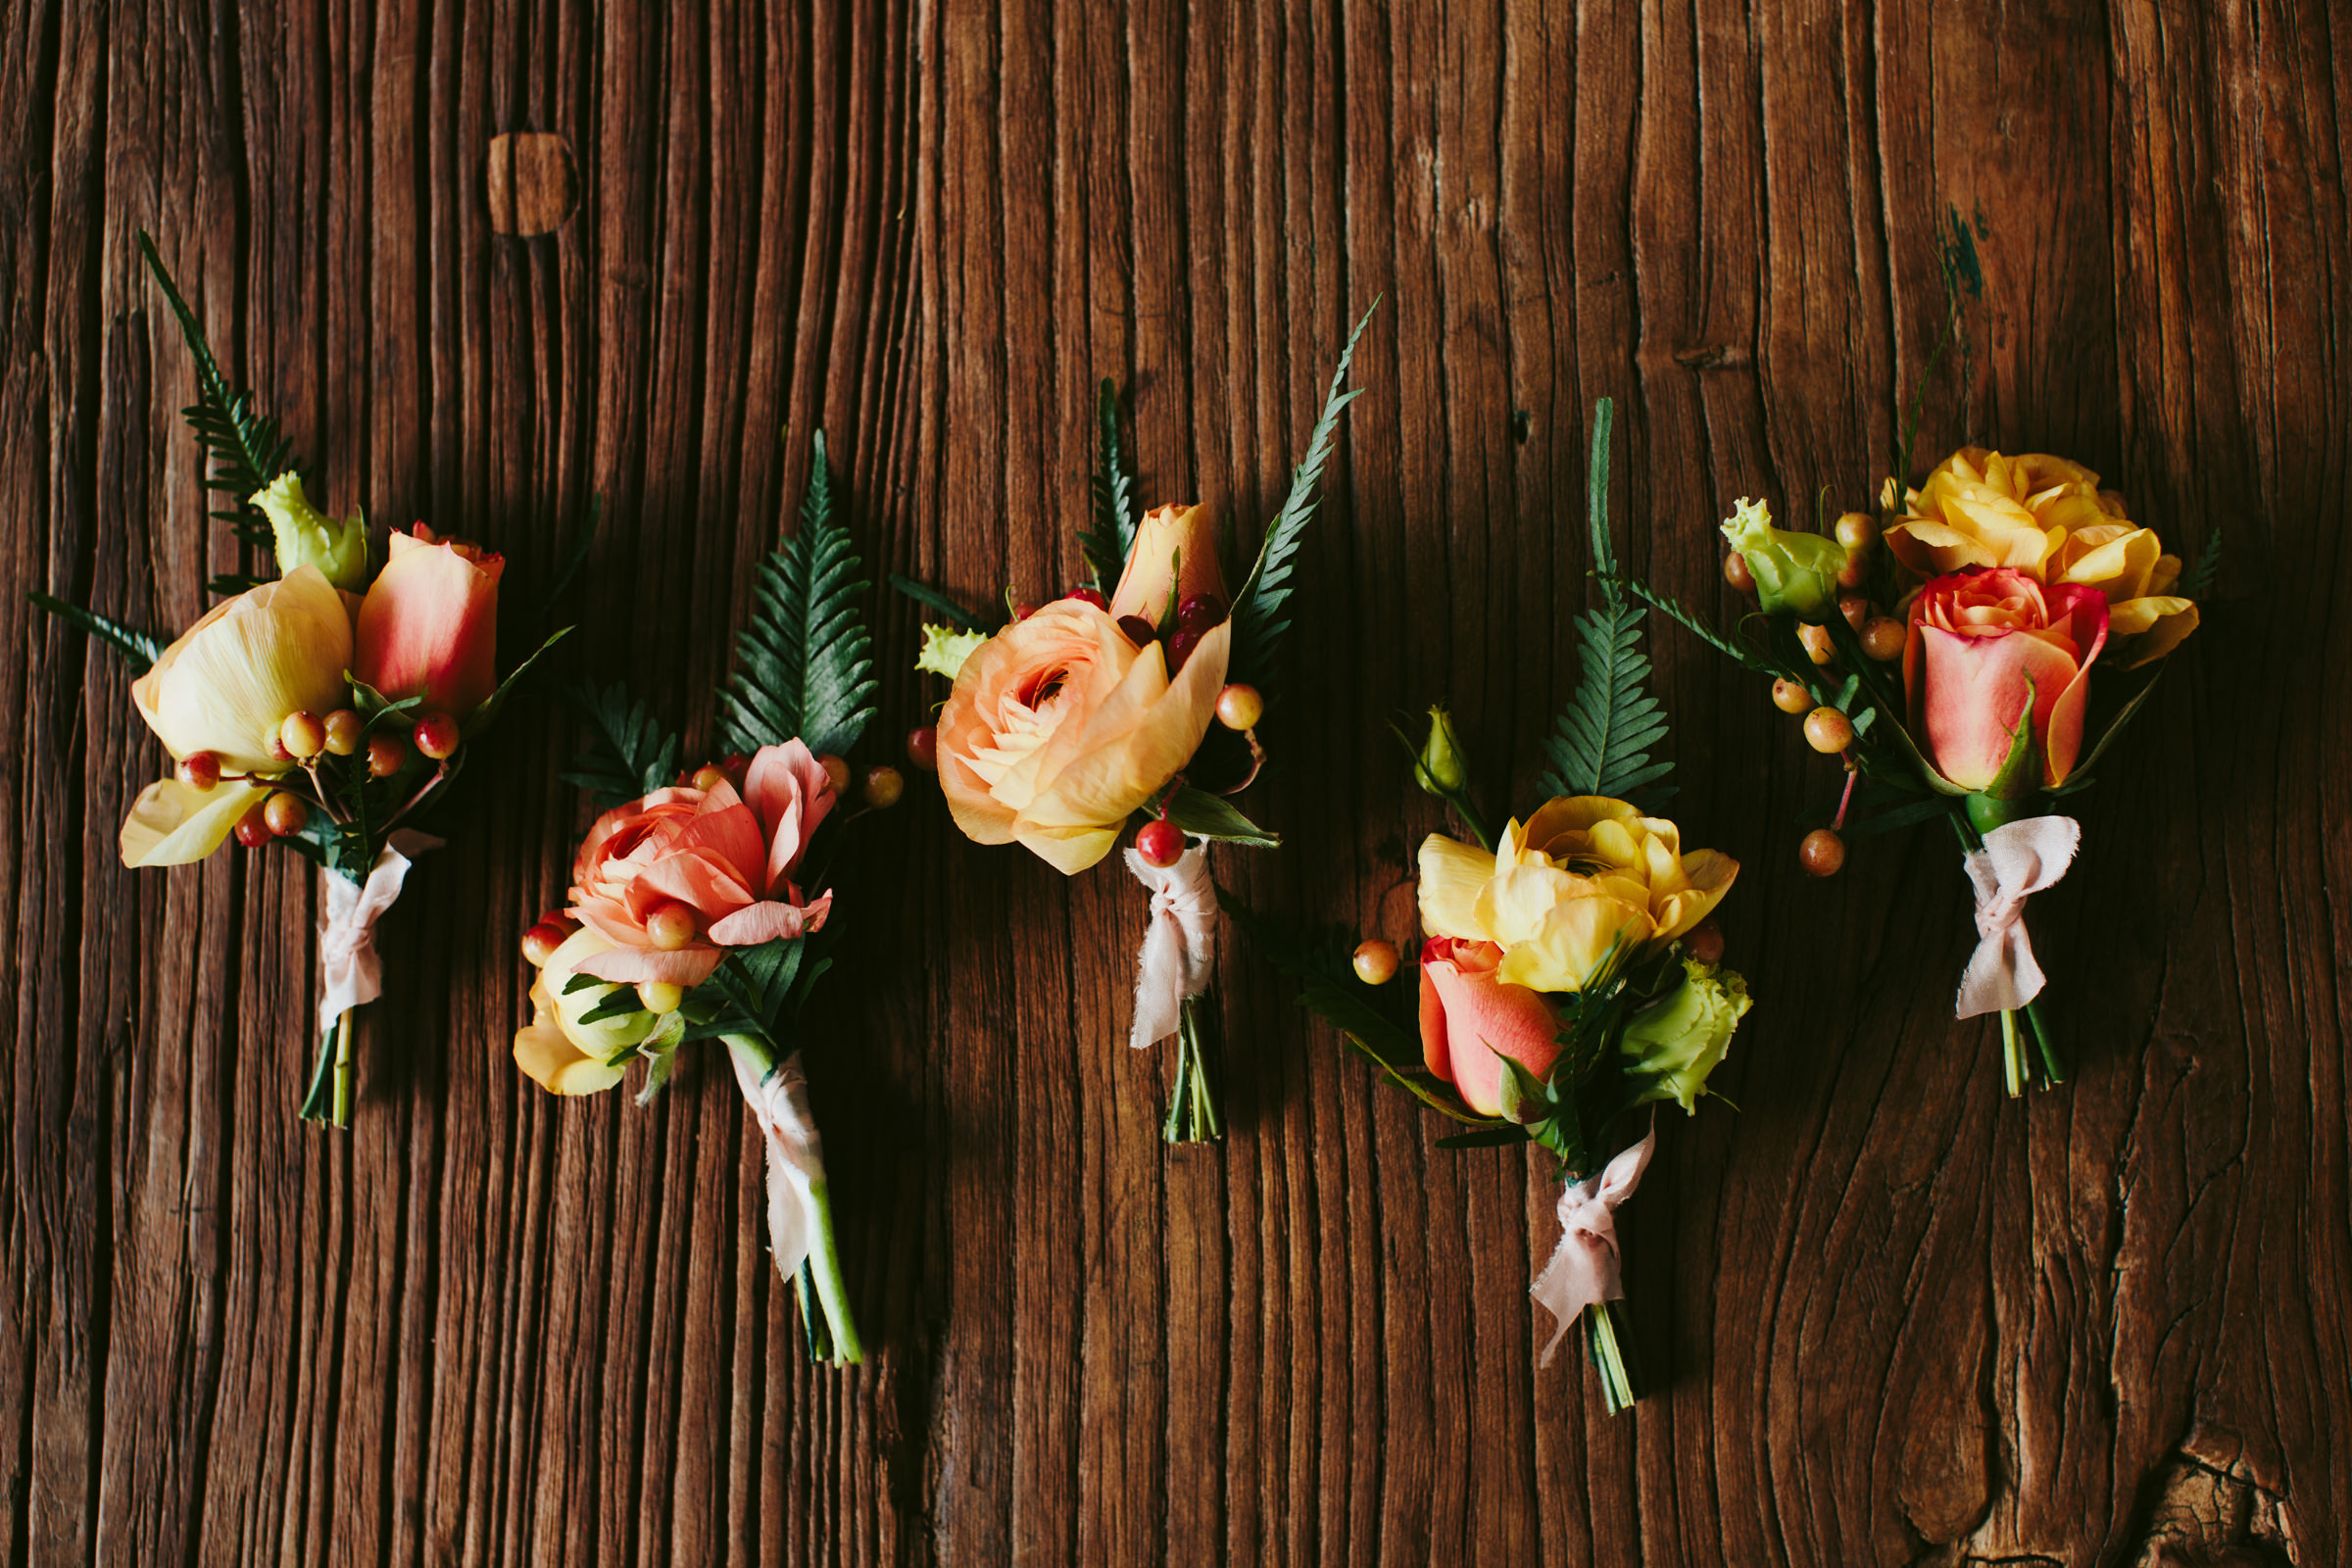 Yellow and coral rose and fern boutonnieres - photo by Melia Lucida - Maui wedding photographer